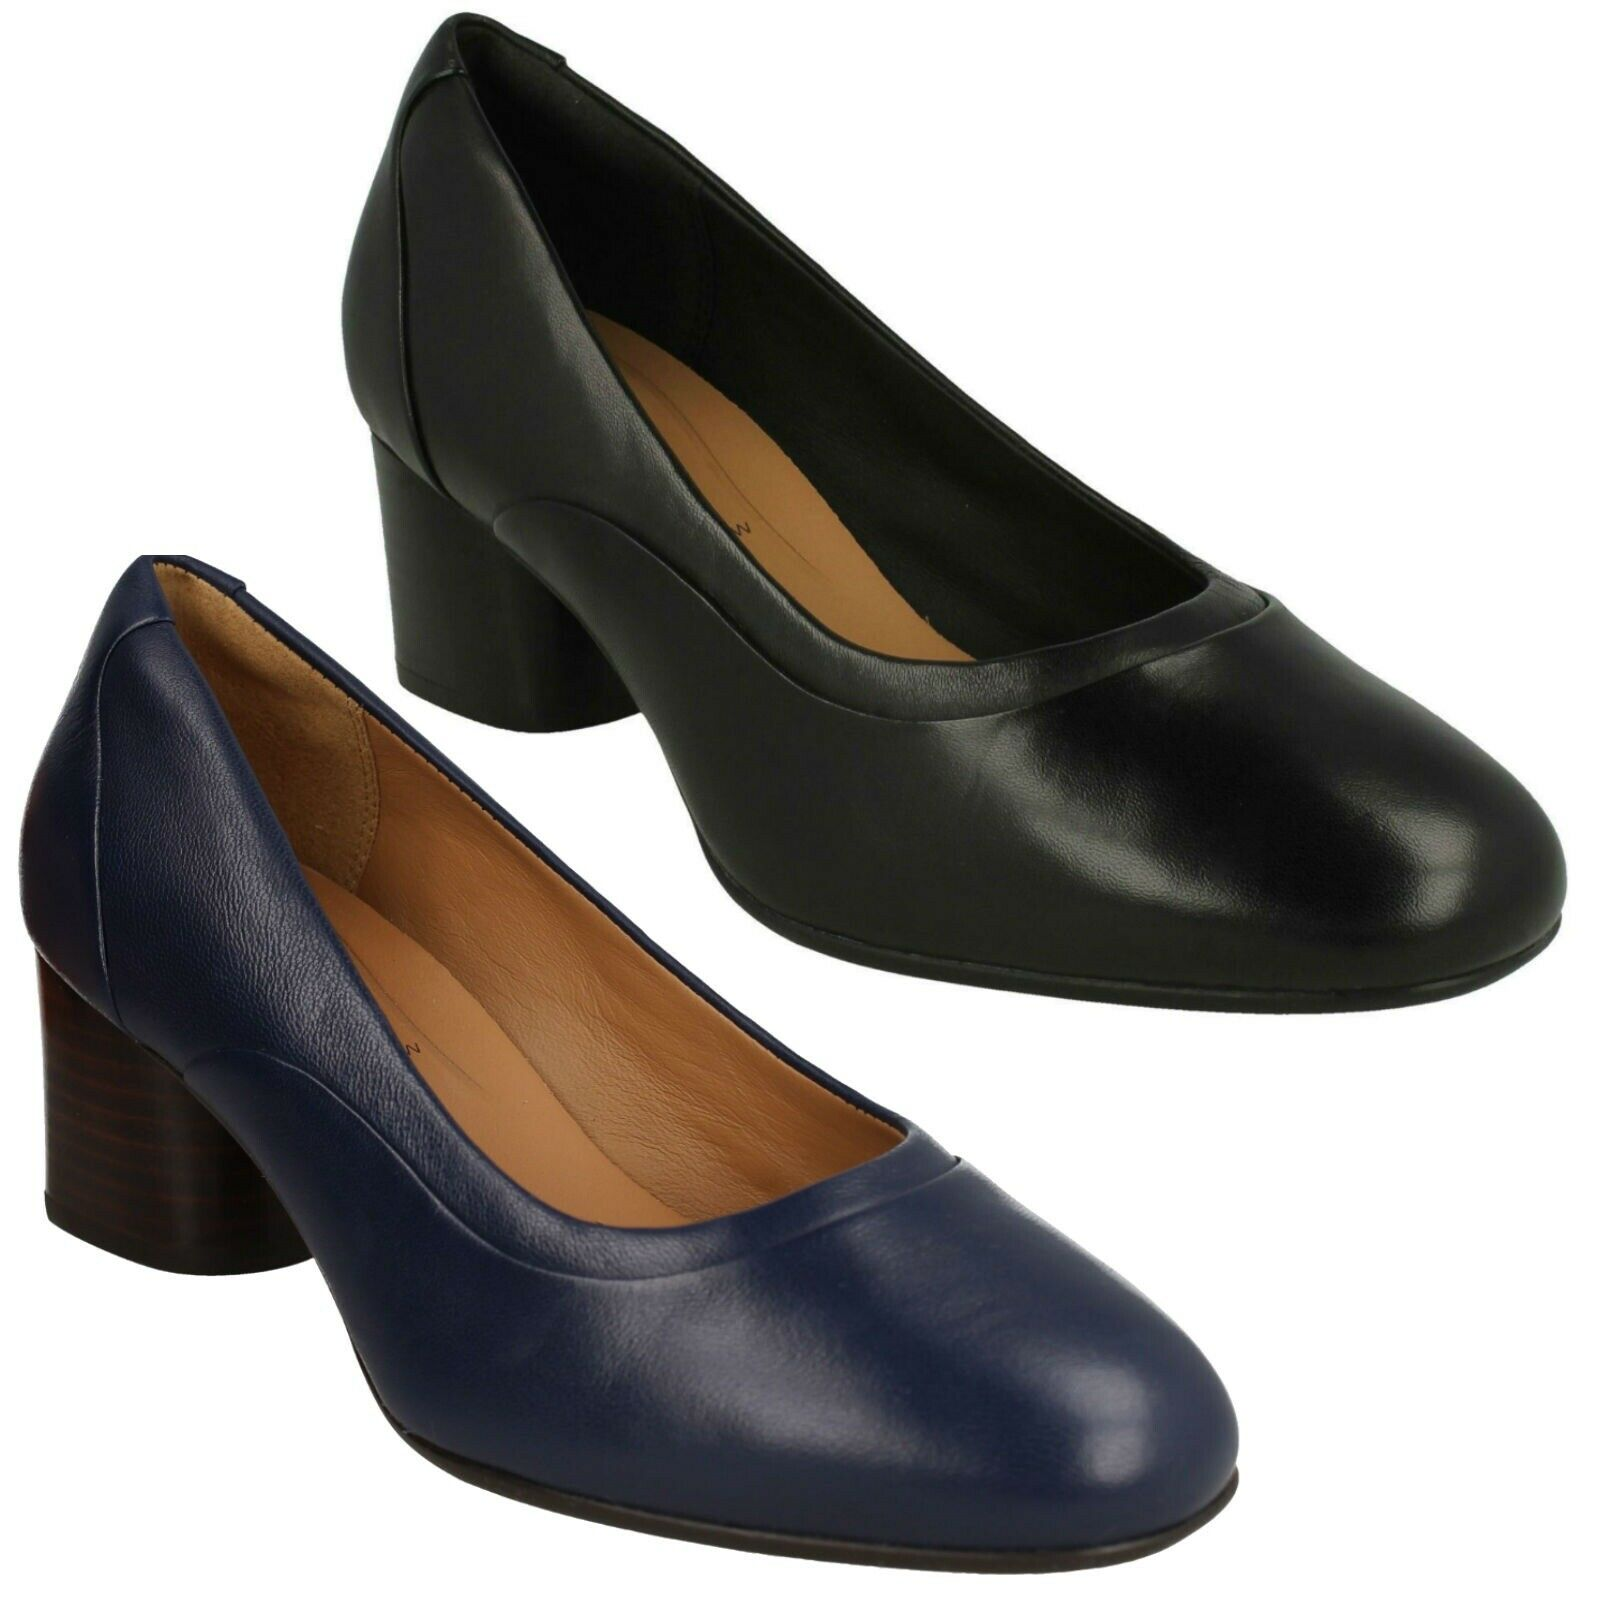 LADIES CLARKS LEATHER UNSTRUCTUrot OFFICE WORK SLIP ON COURT schuhe UN COSMO STEP